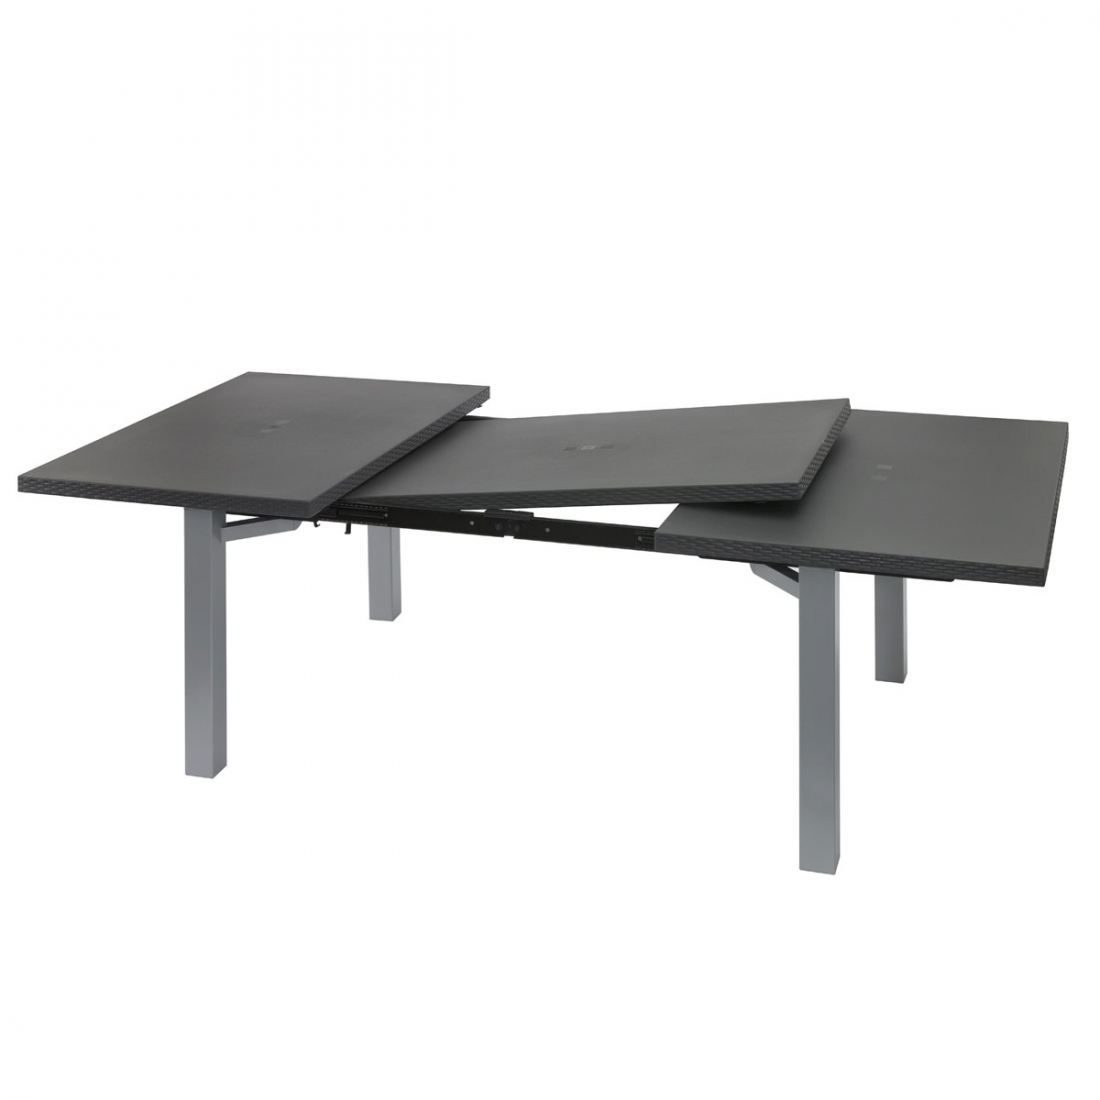 Table ext rieure extensible 100 240x120 ineo design grosfillex for Table extensible 160